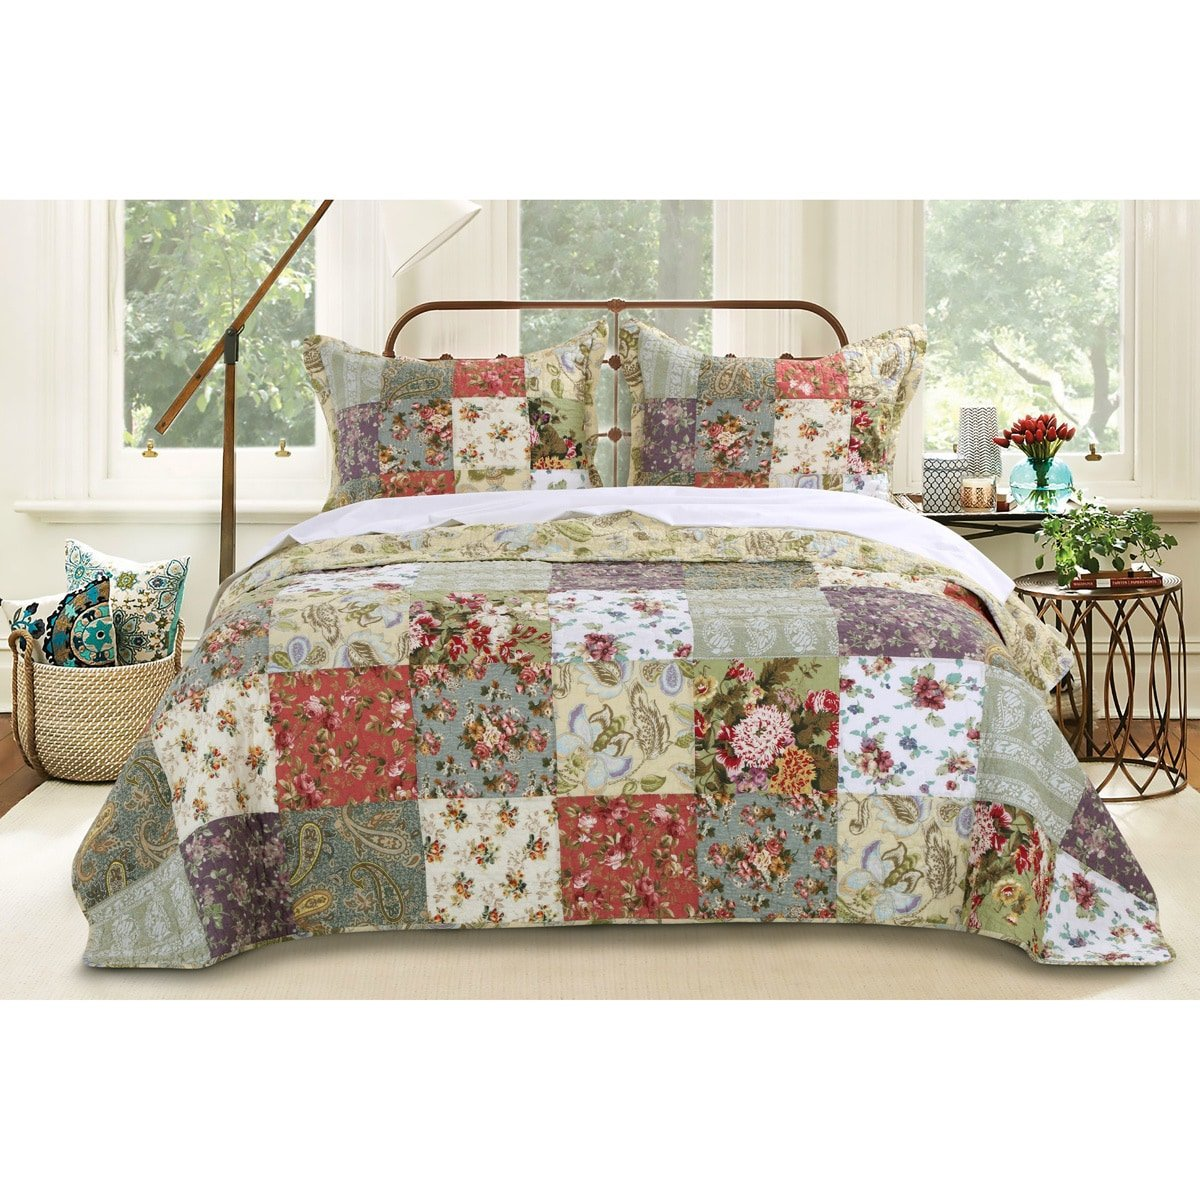 Blooming Prairie Bedspread Set Size: Full